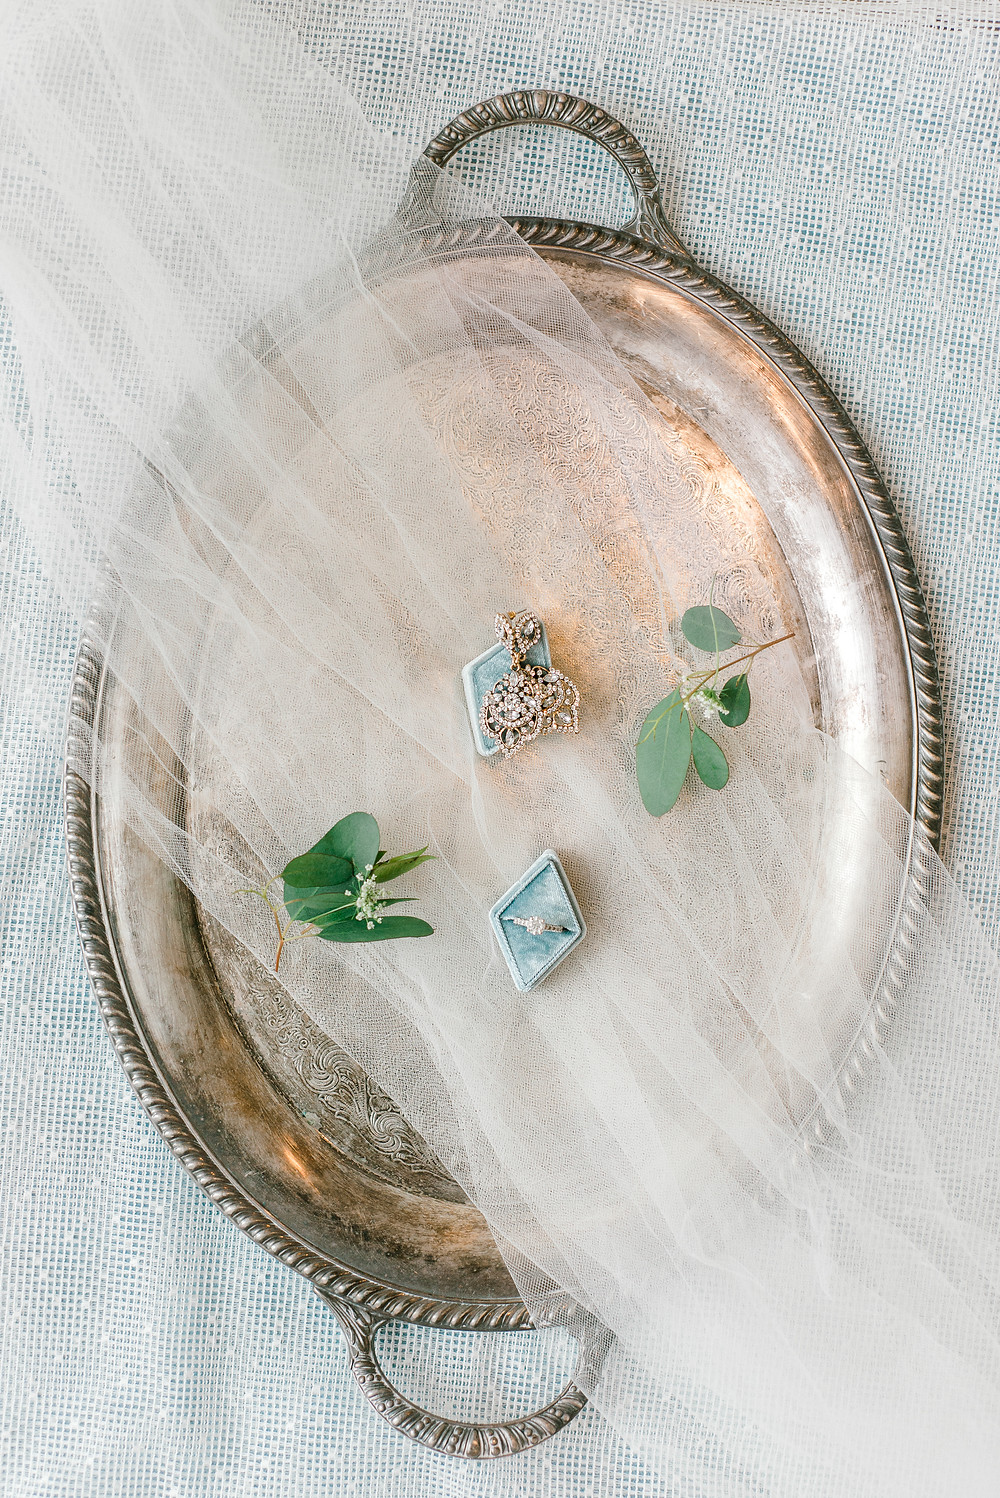 Where to buy flat lay styling kits for wedding photographers